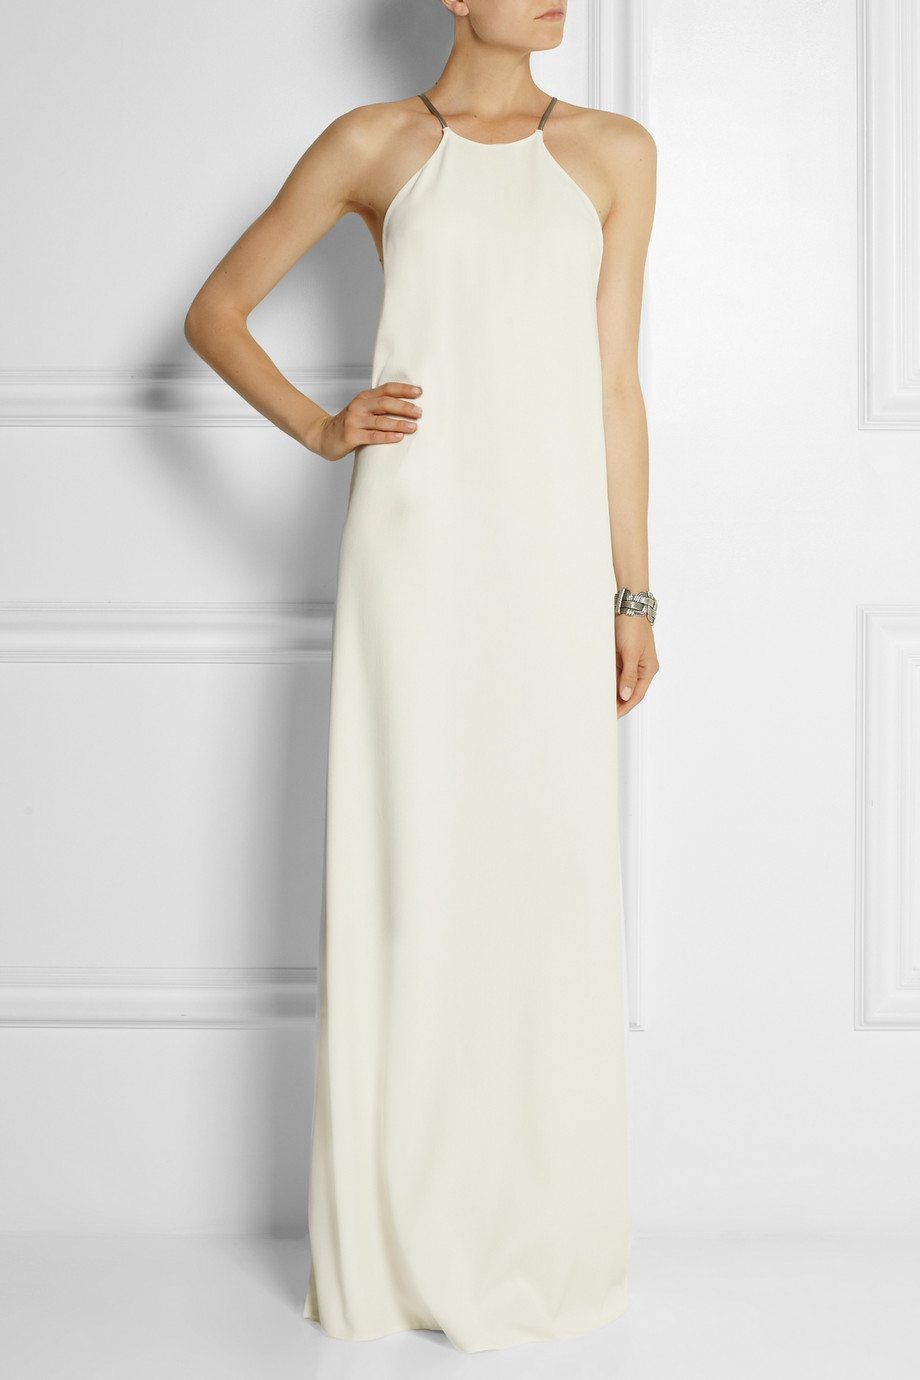 Lyst Calvin Klein Jarvis Crepe Maxi Dress In White